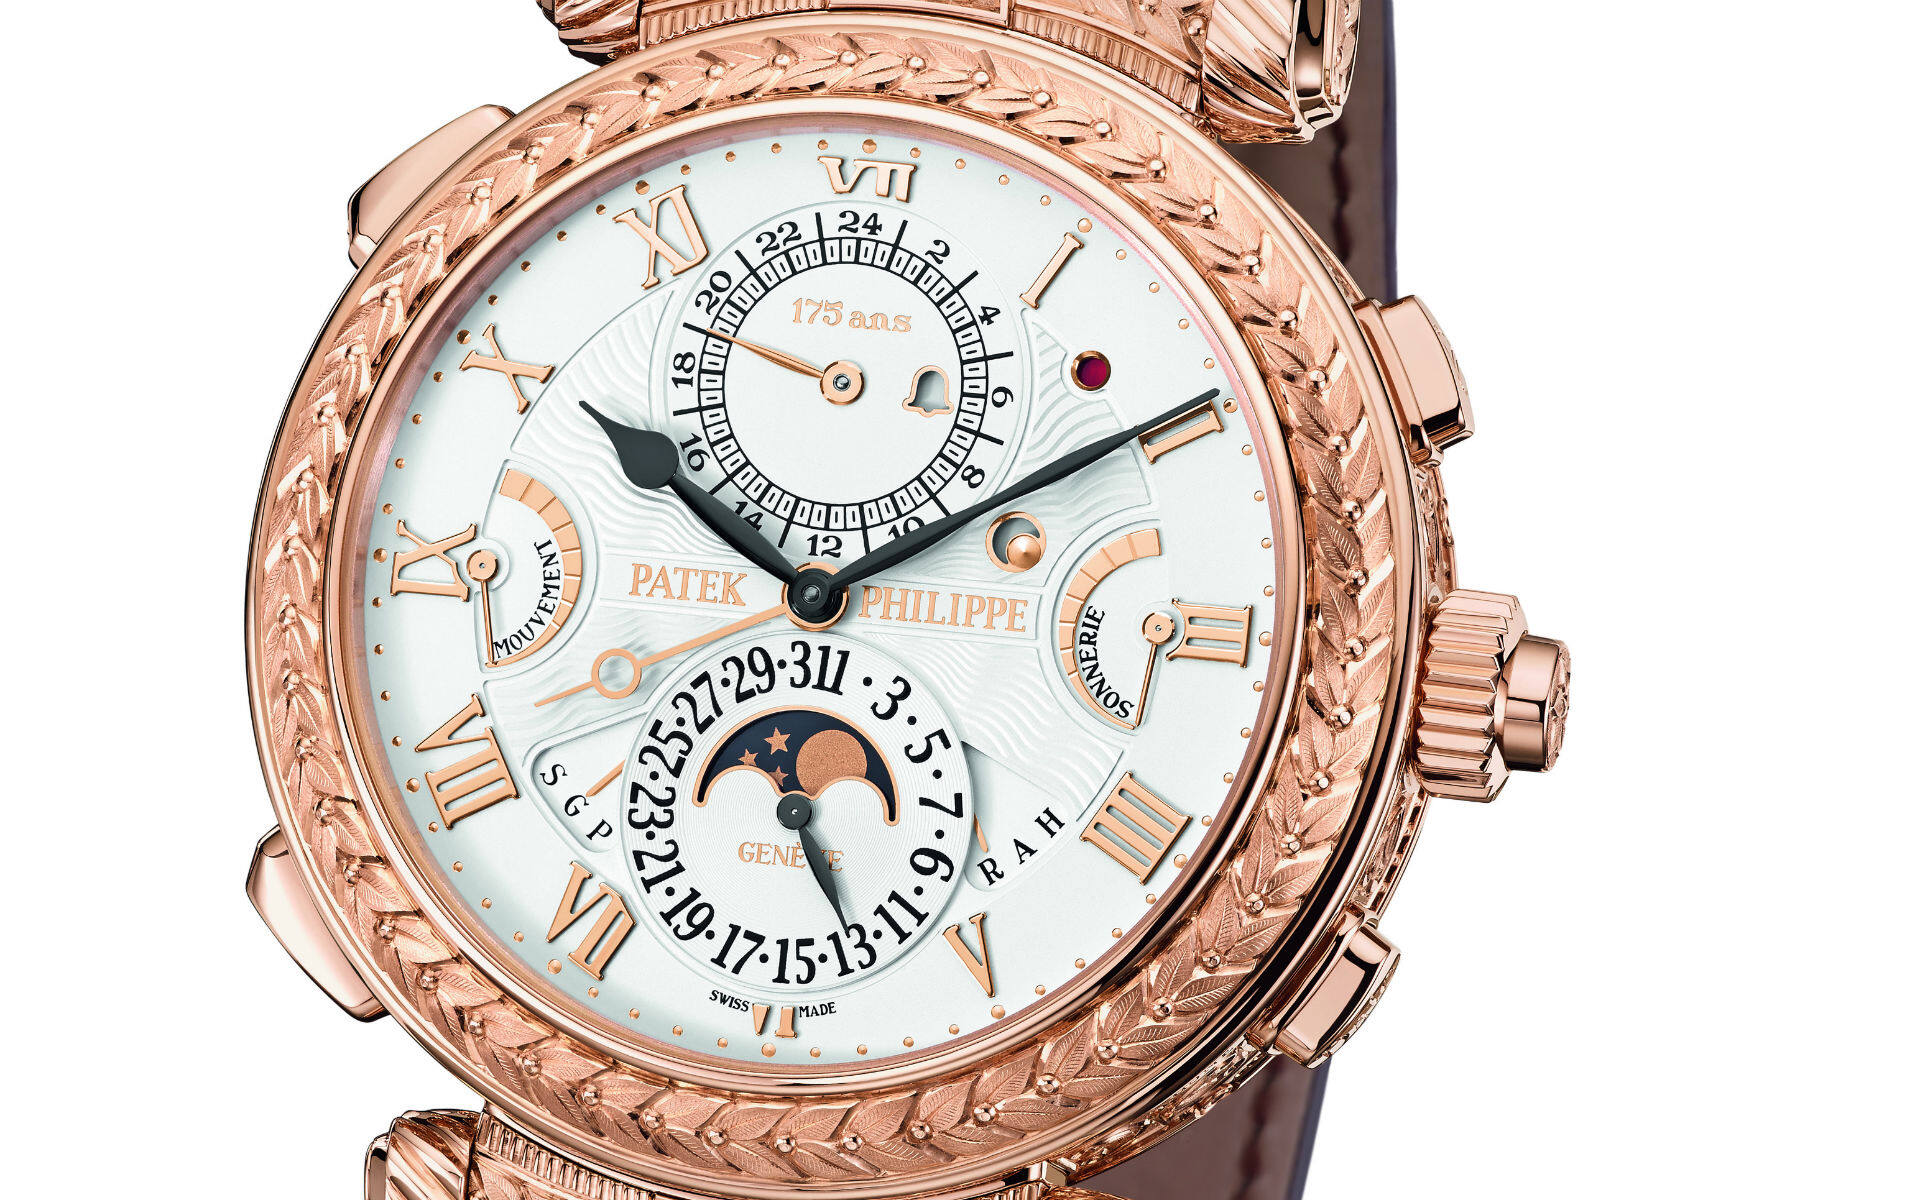 grand complication, baselworld 2016, patek philippe